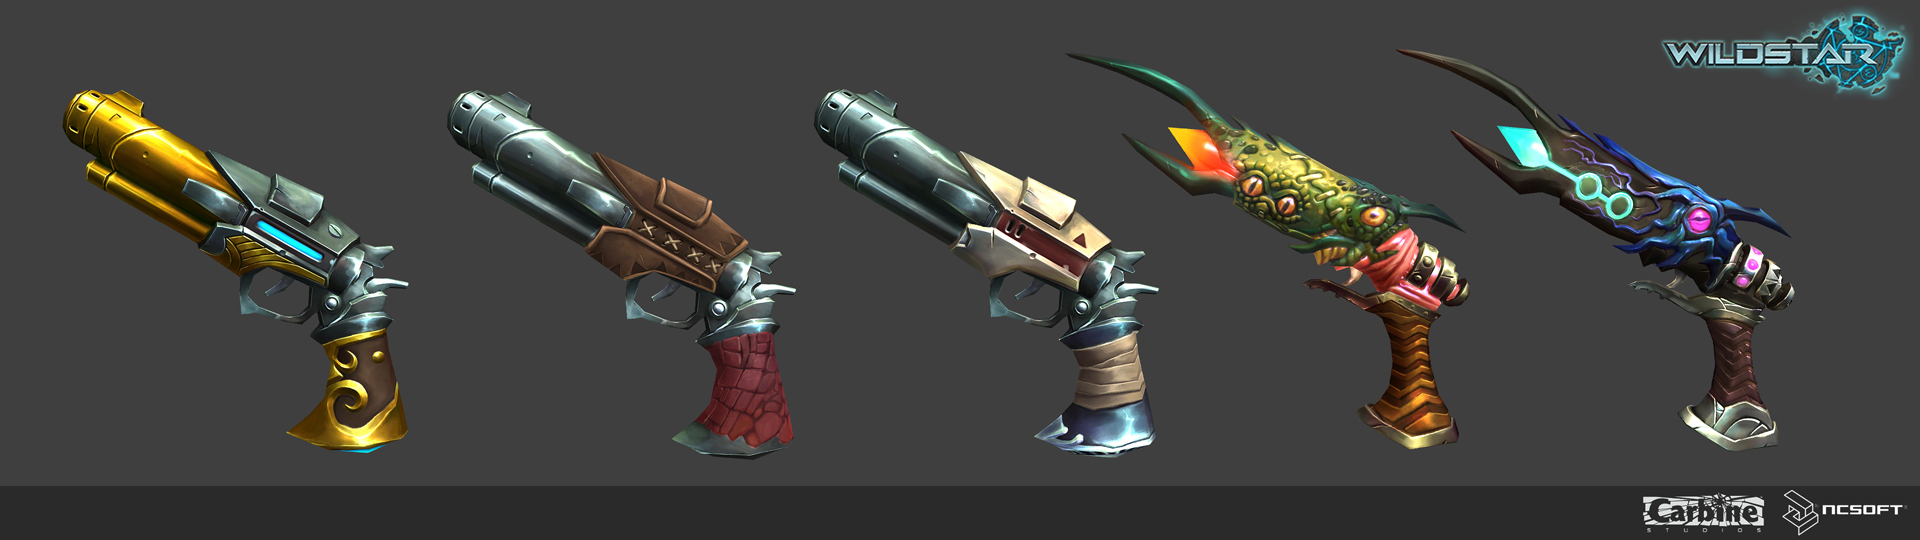 wildstar spellslinger weapons